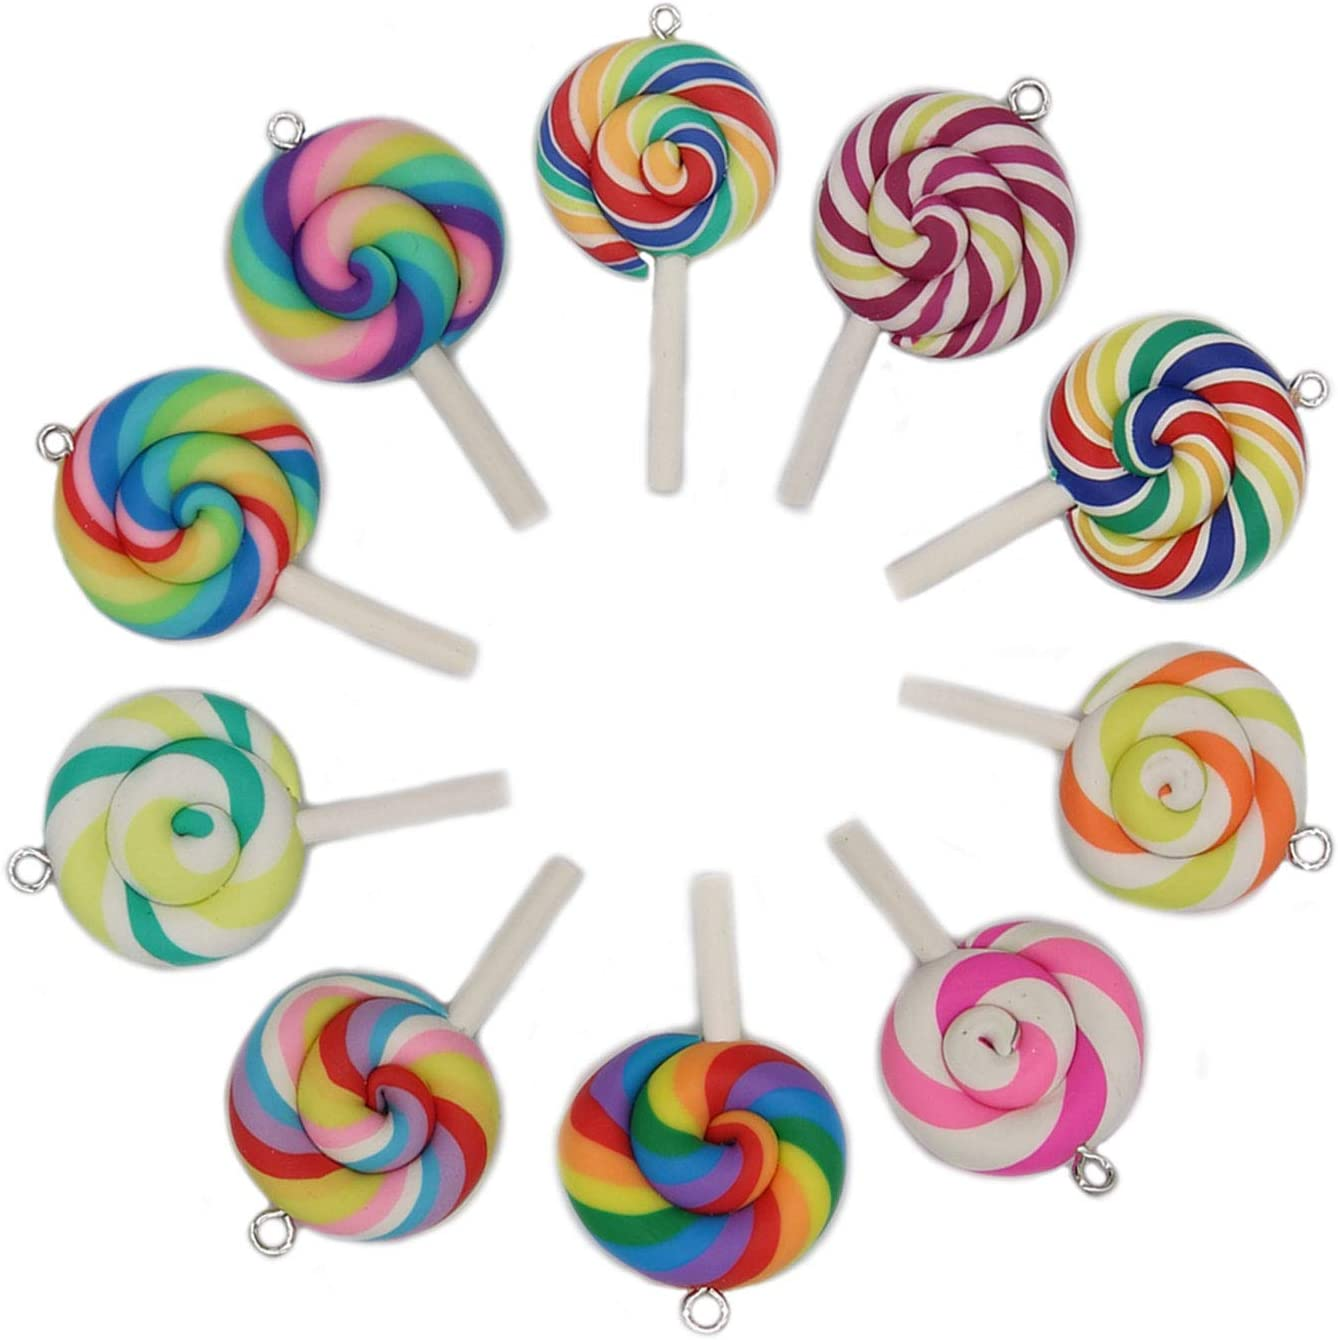 20 Pcs Colorful Polymer Clay Lollipops Pendant Charms